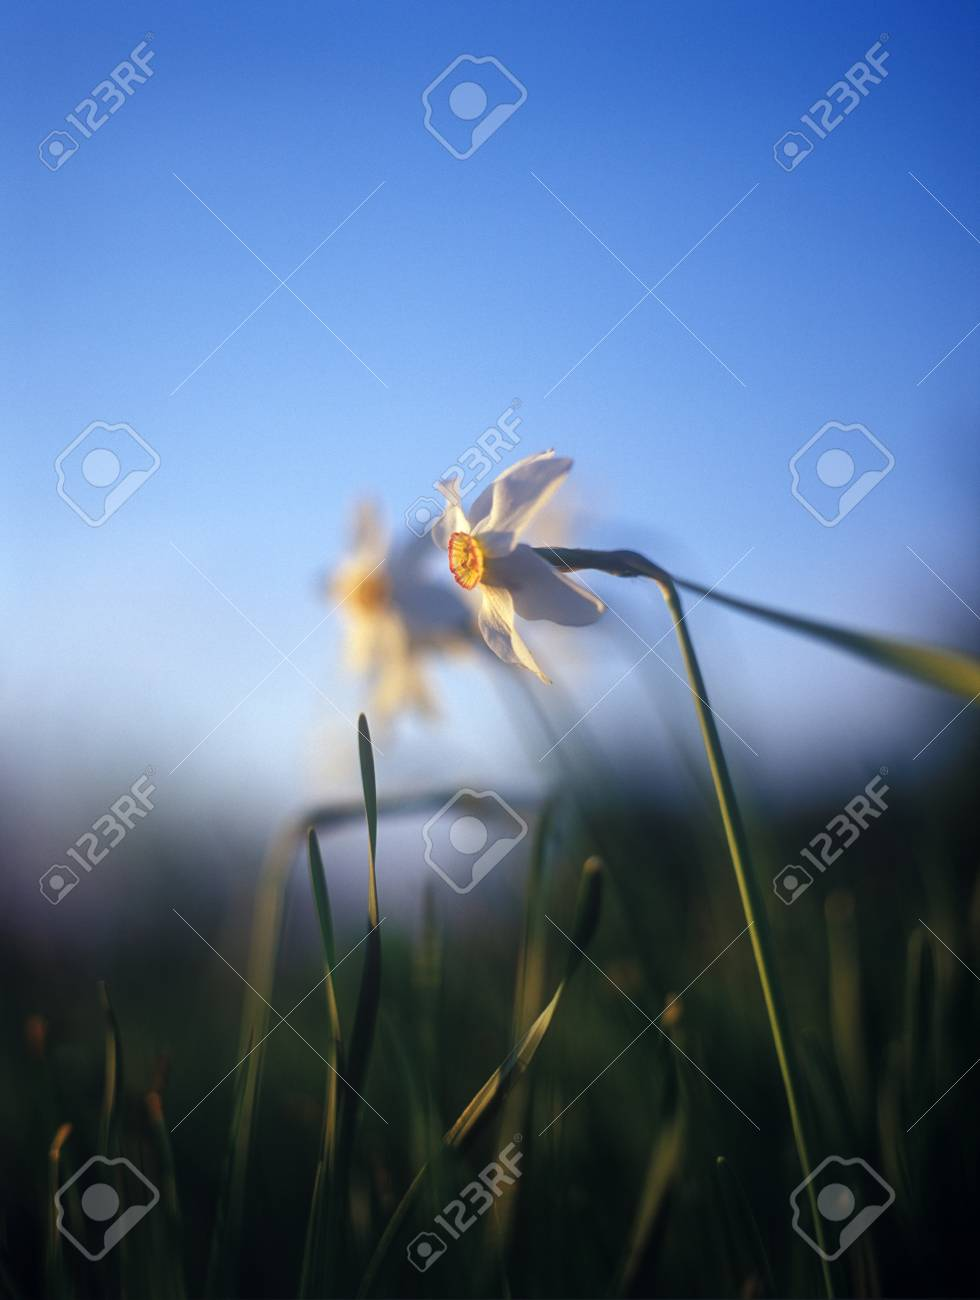 Spring daffodils in the warm light of sunset in Narcissi Valley. Stock Photo - 11932744